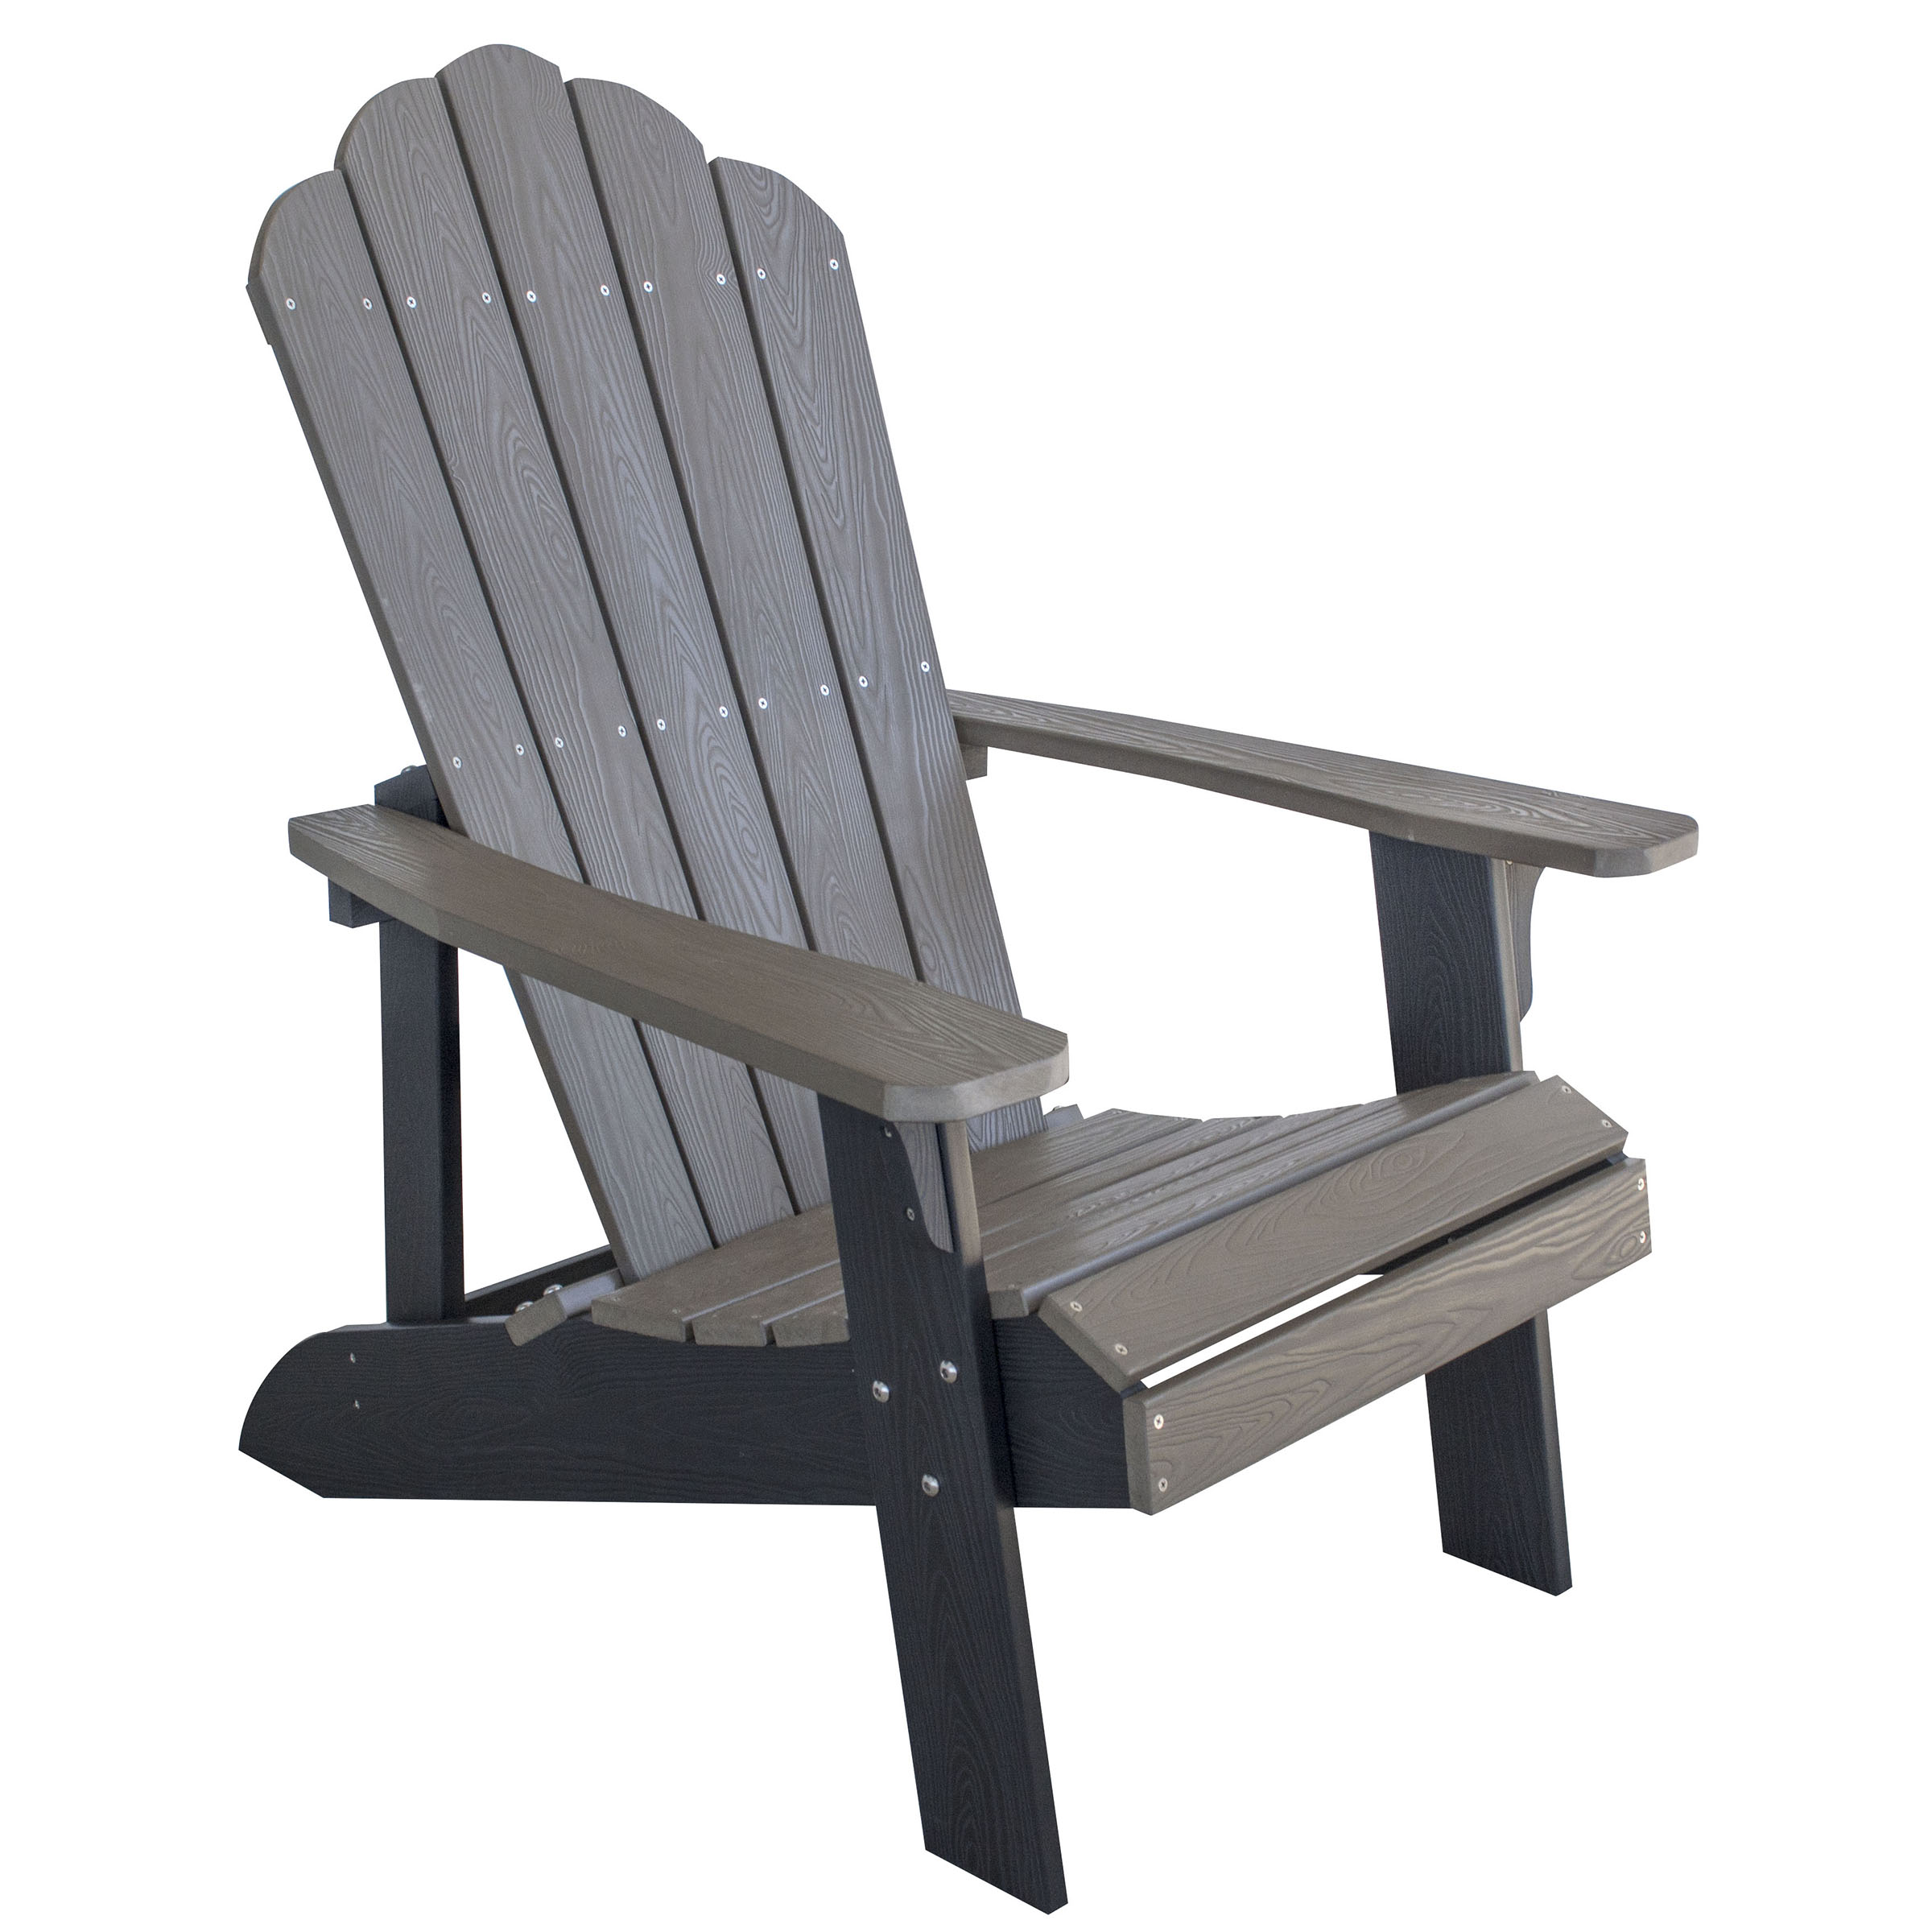 AmeriHome Outdoor Two Tone Adirondack Chair with Durable Simulated Wood Construction - Driftwood with Black Accents